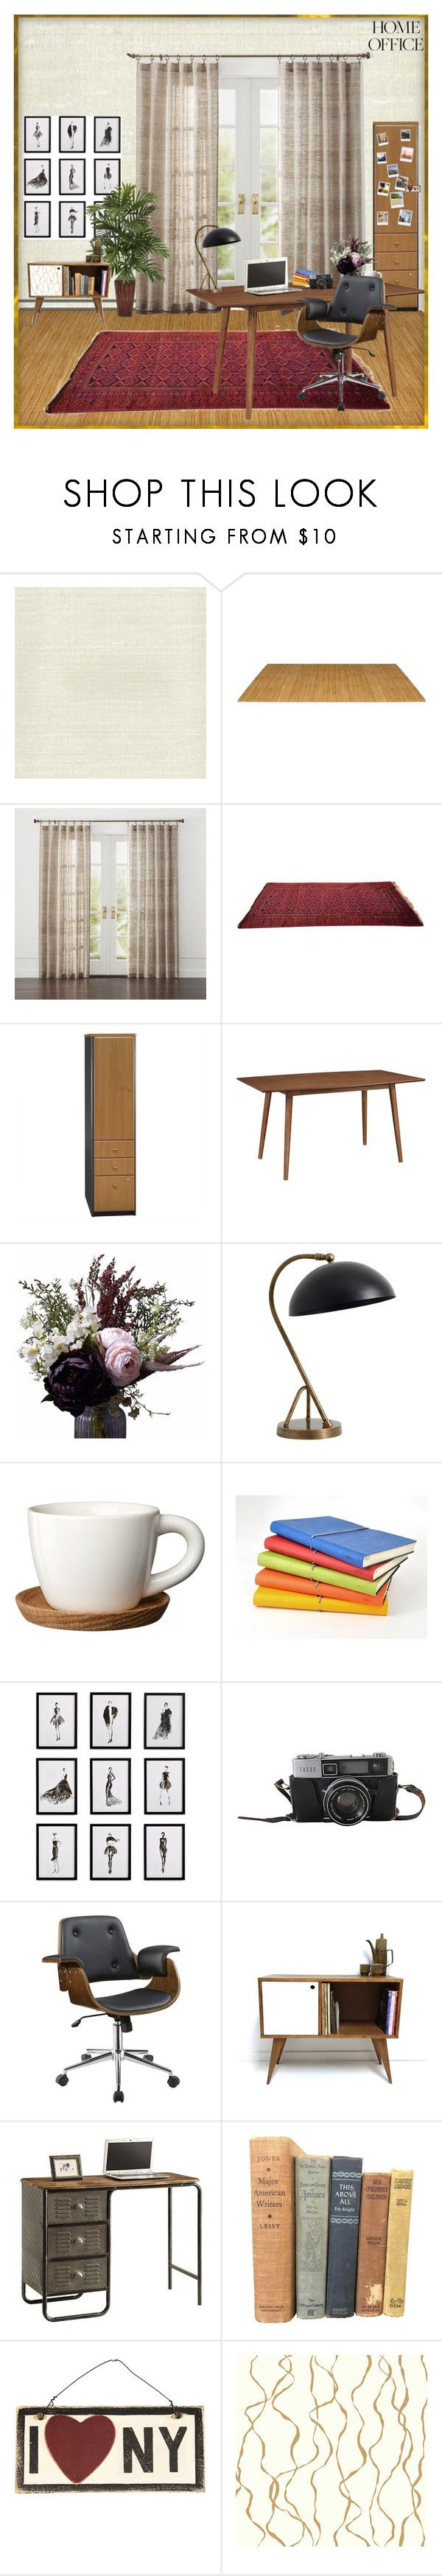 """Home office"" by anastasia-17 ❤ liked on Polyvore featuring interior, interiors, interior design, home, home decor, interior decorating, York Wallcoverings, Bush Business Furniture, Walker Edison and Abigail Ahern"